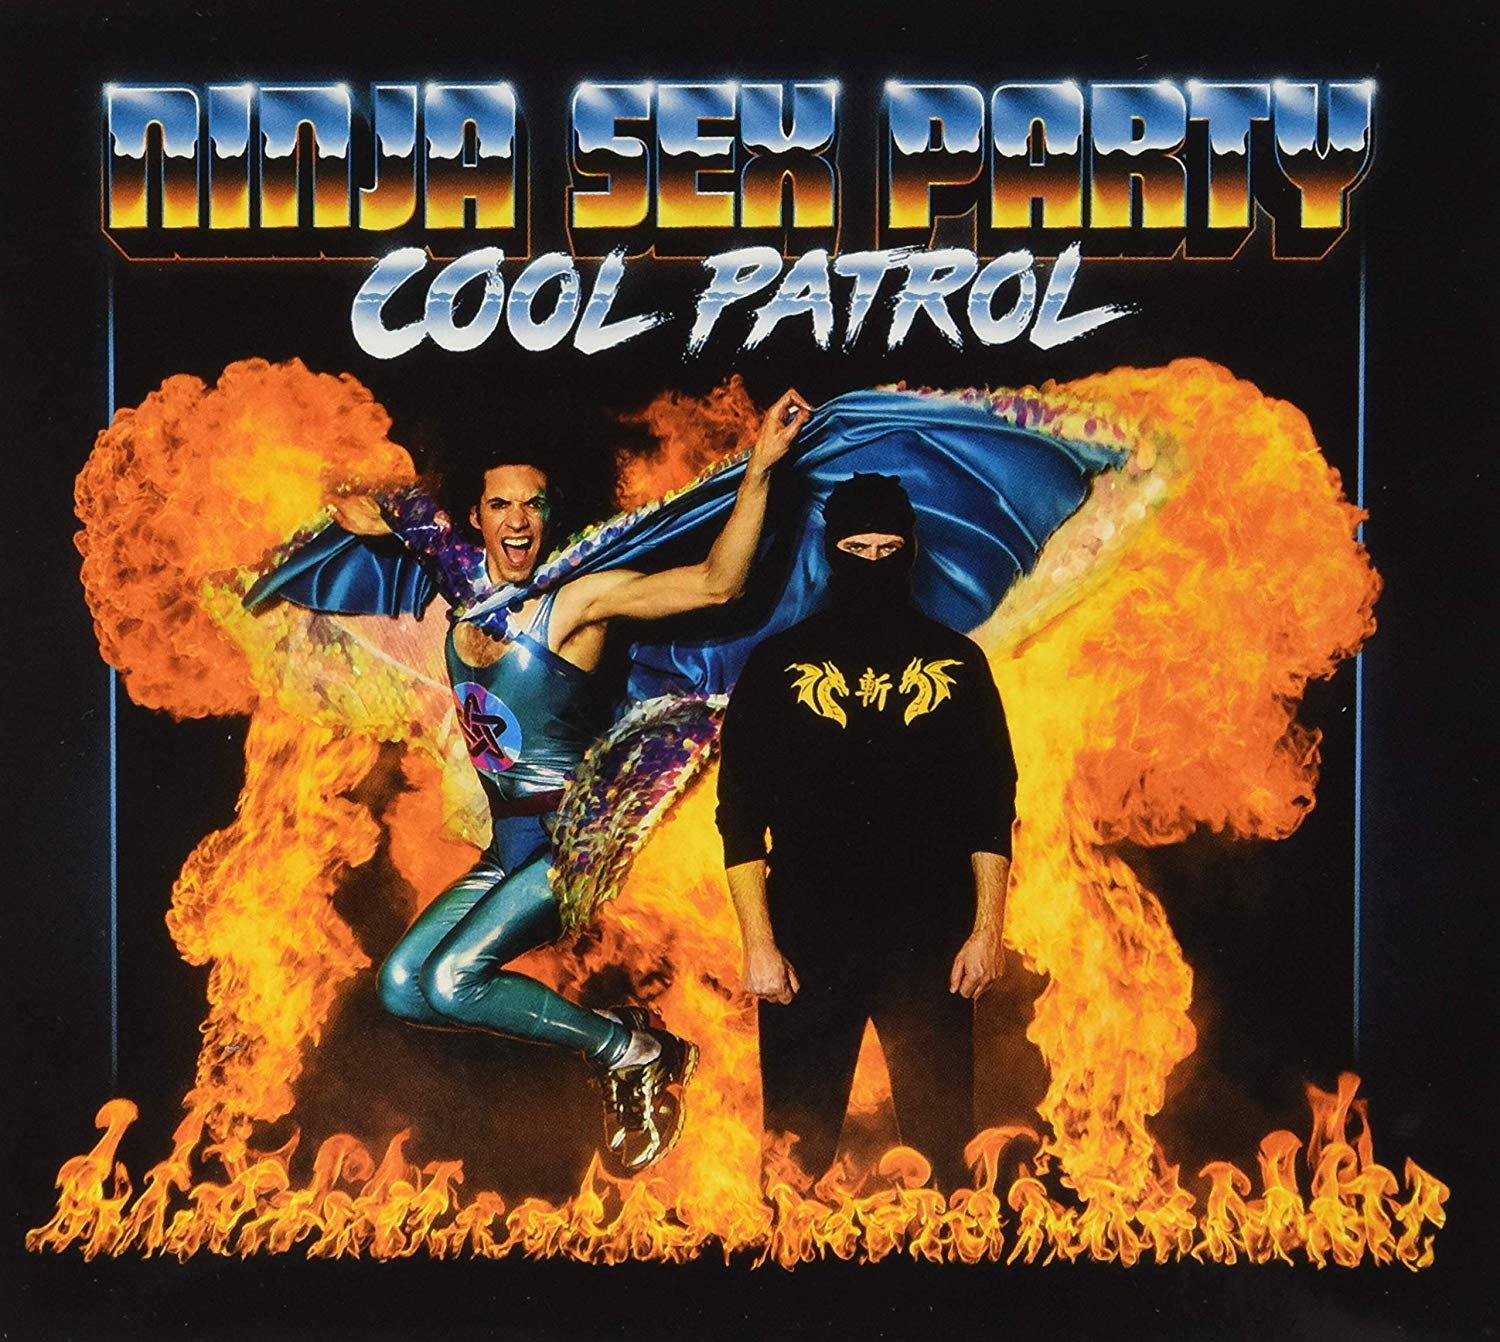 Cool Patrol CD